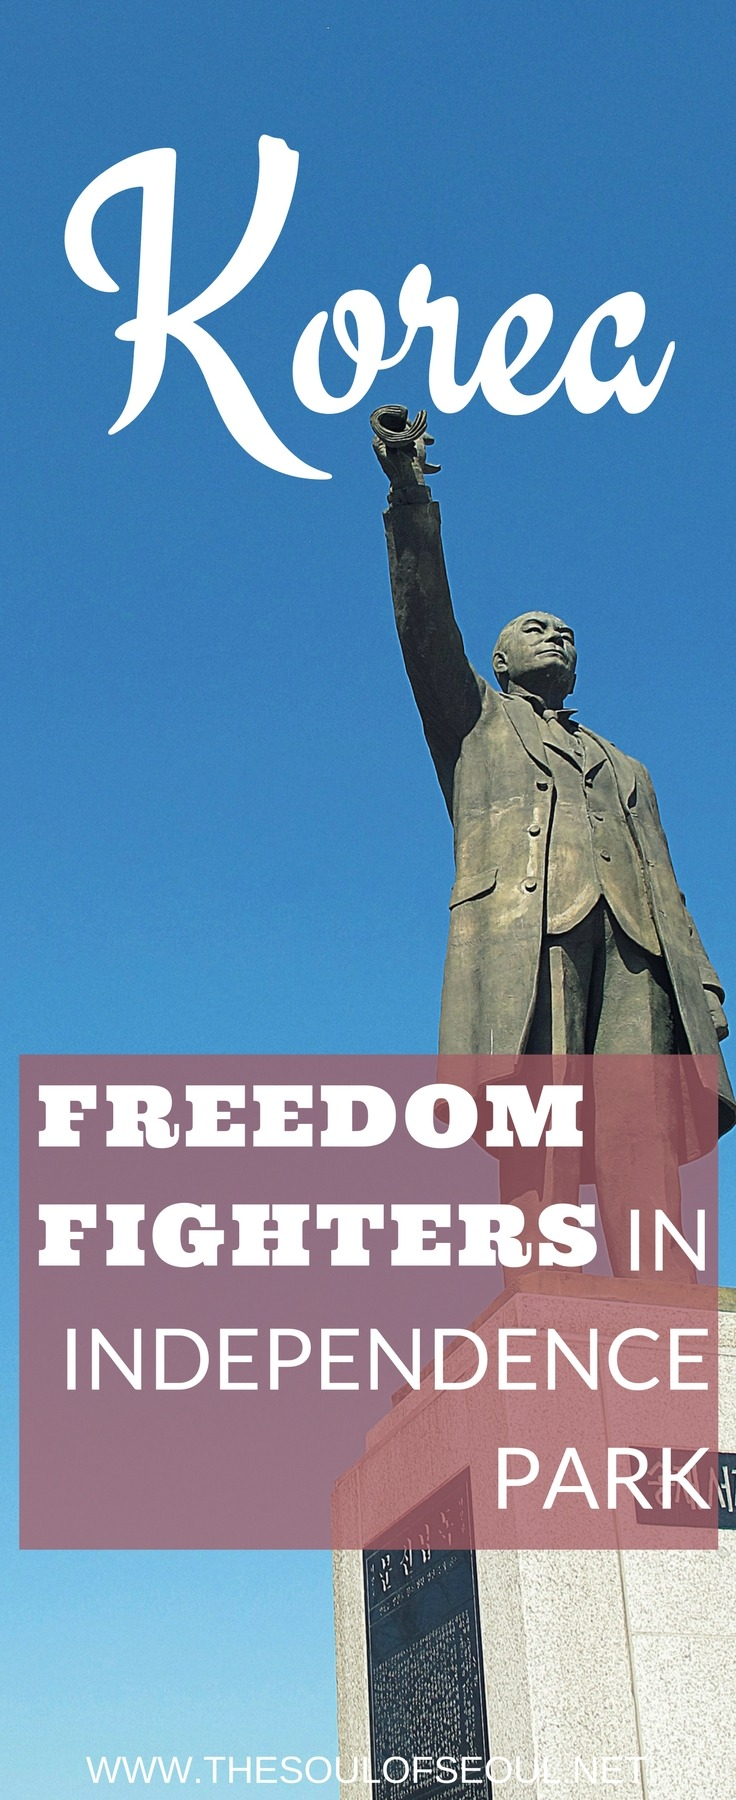 Freedom Fighters in Independence Park, Seoul, Korea: Seodaemun Independence Park was built on the grounds of what used to be a prison for freedom fighters and activists during the Japanese occupation.